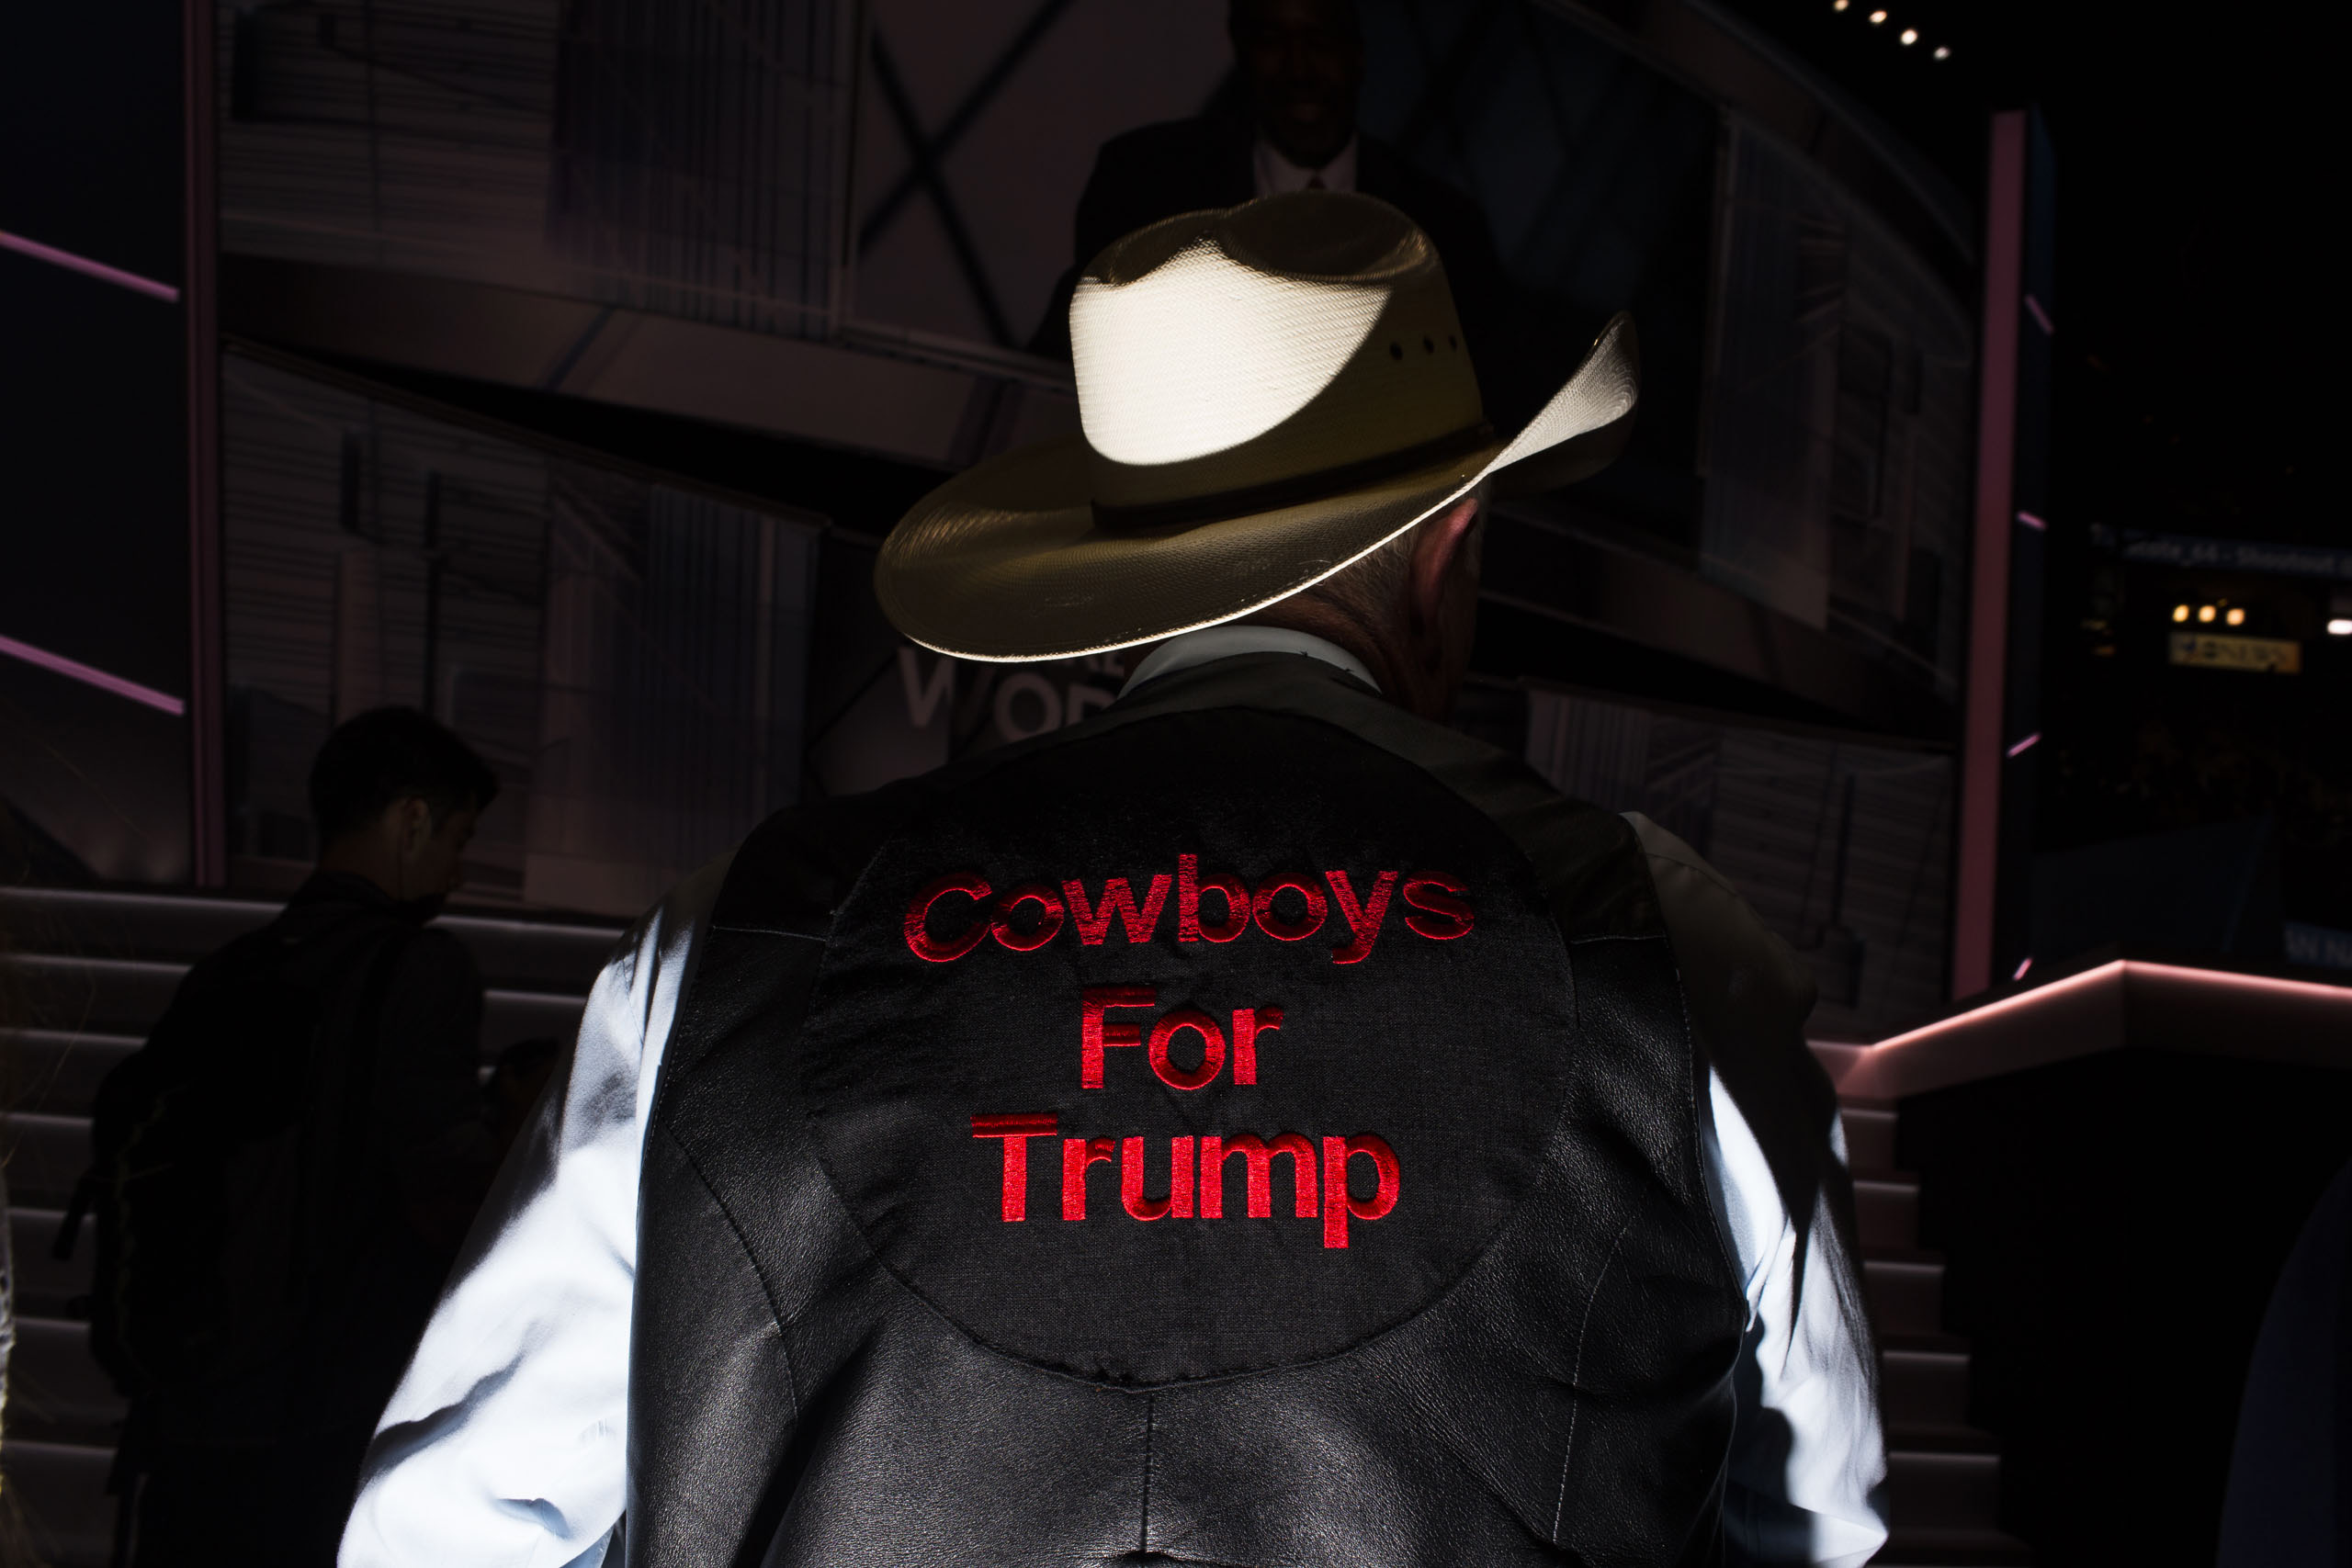 Cowboys for Trump on the floor at the Republican National Convention, July 19, 2016 in Cleveland.